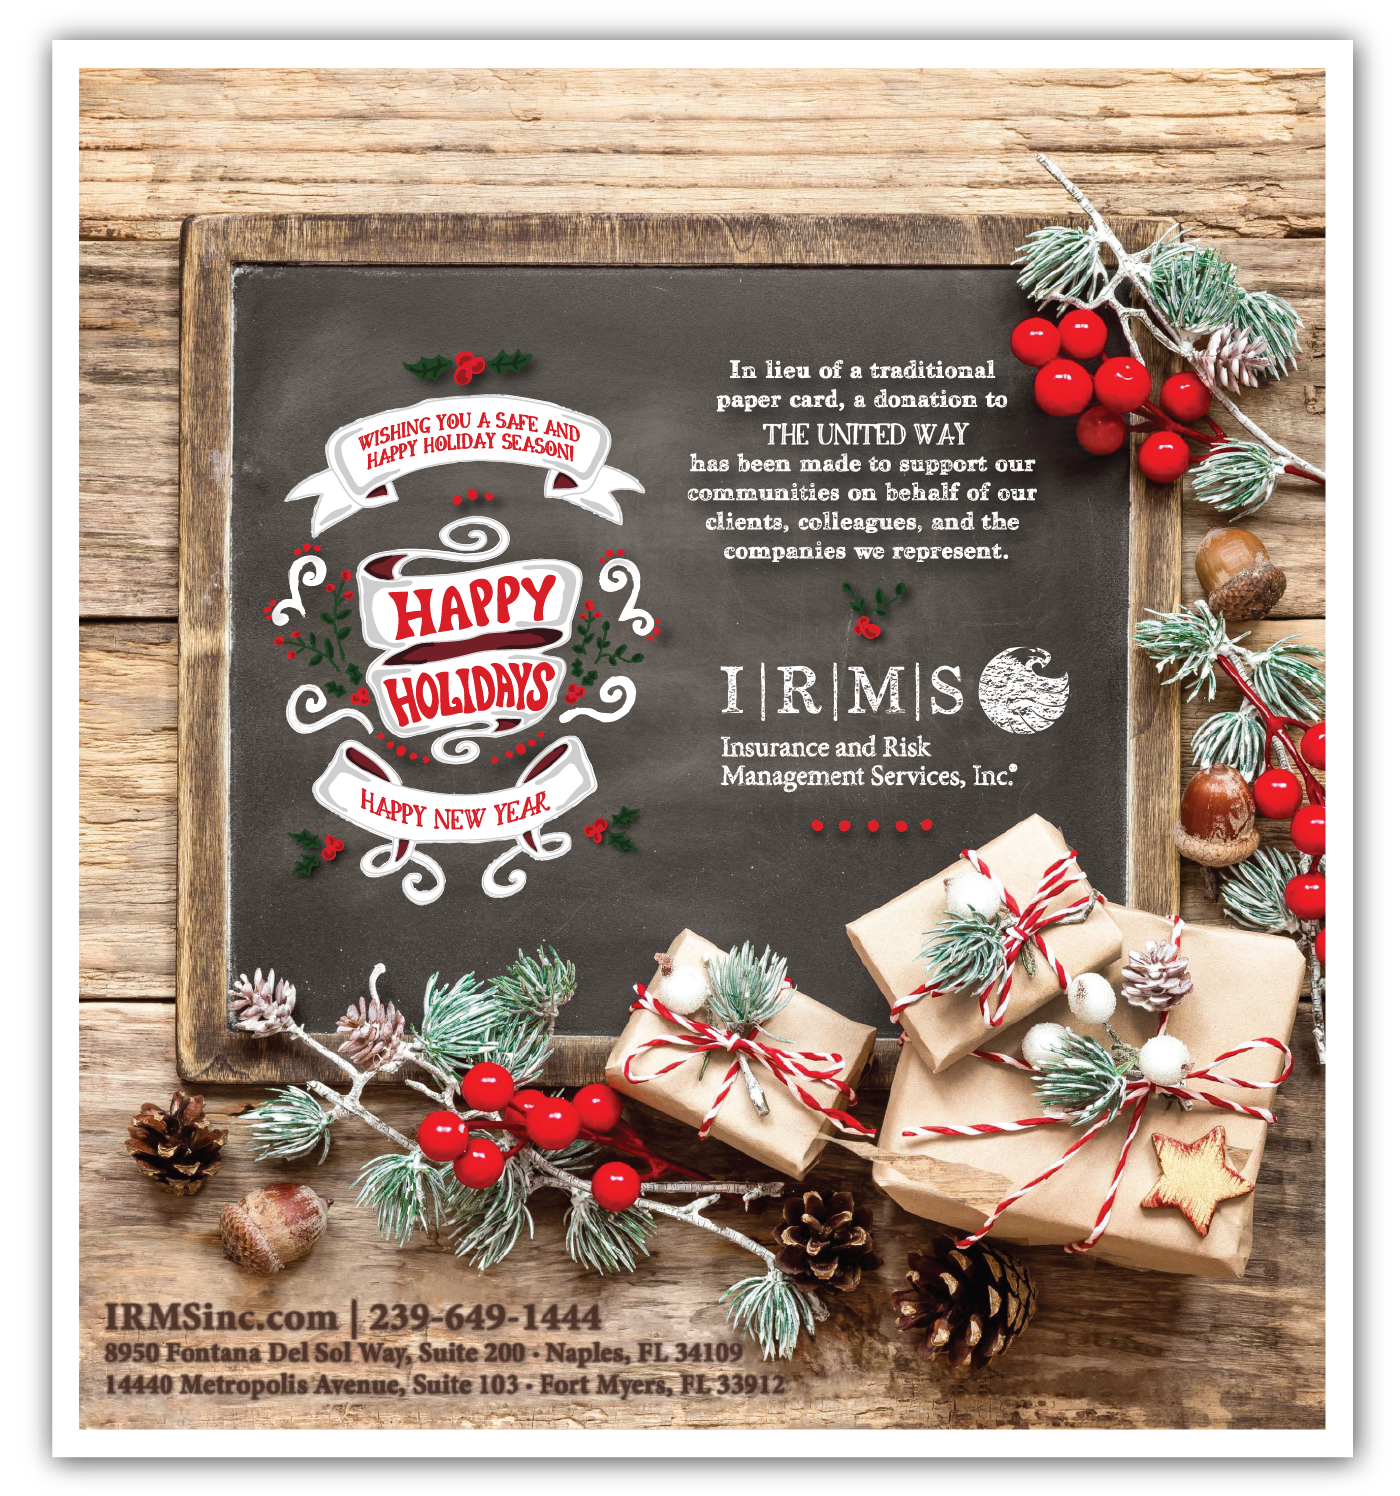 irms-happy-holidays-2016